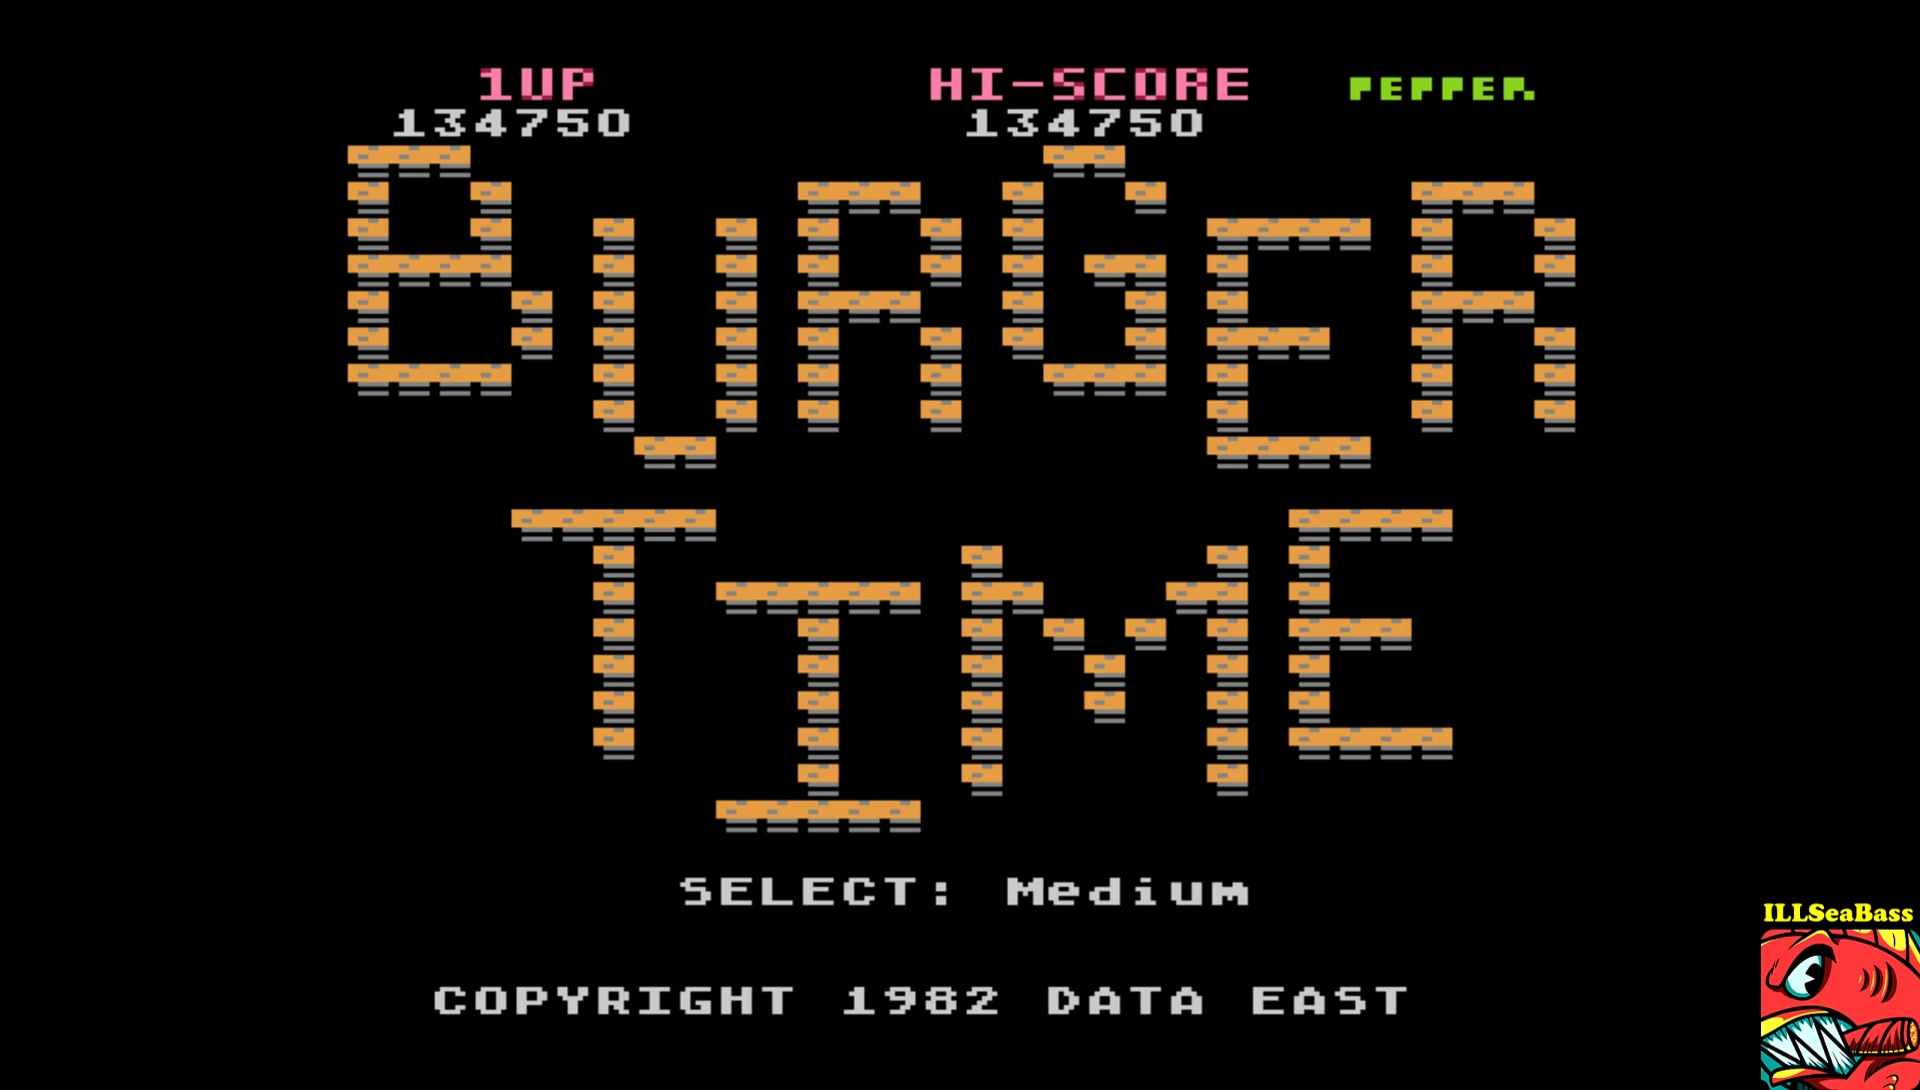 ILLSeaBass: Burger Time (5200) [Medium] (Atari 400/800/XL/XE Emulated) 134,750 points on 2017-06-05 00:23:51